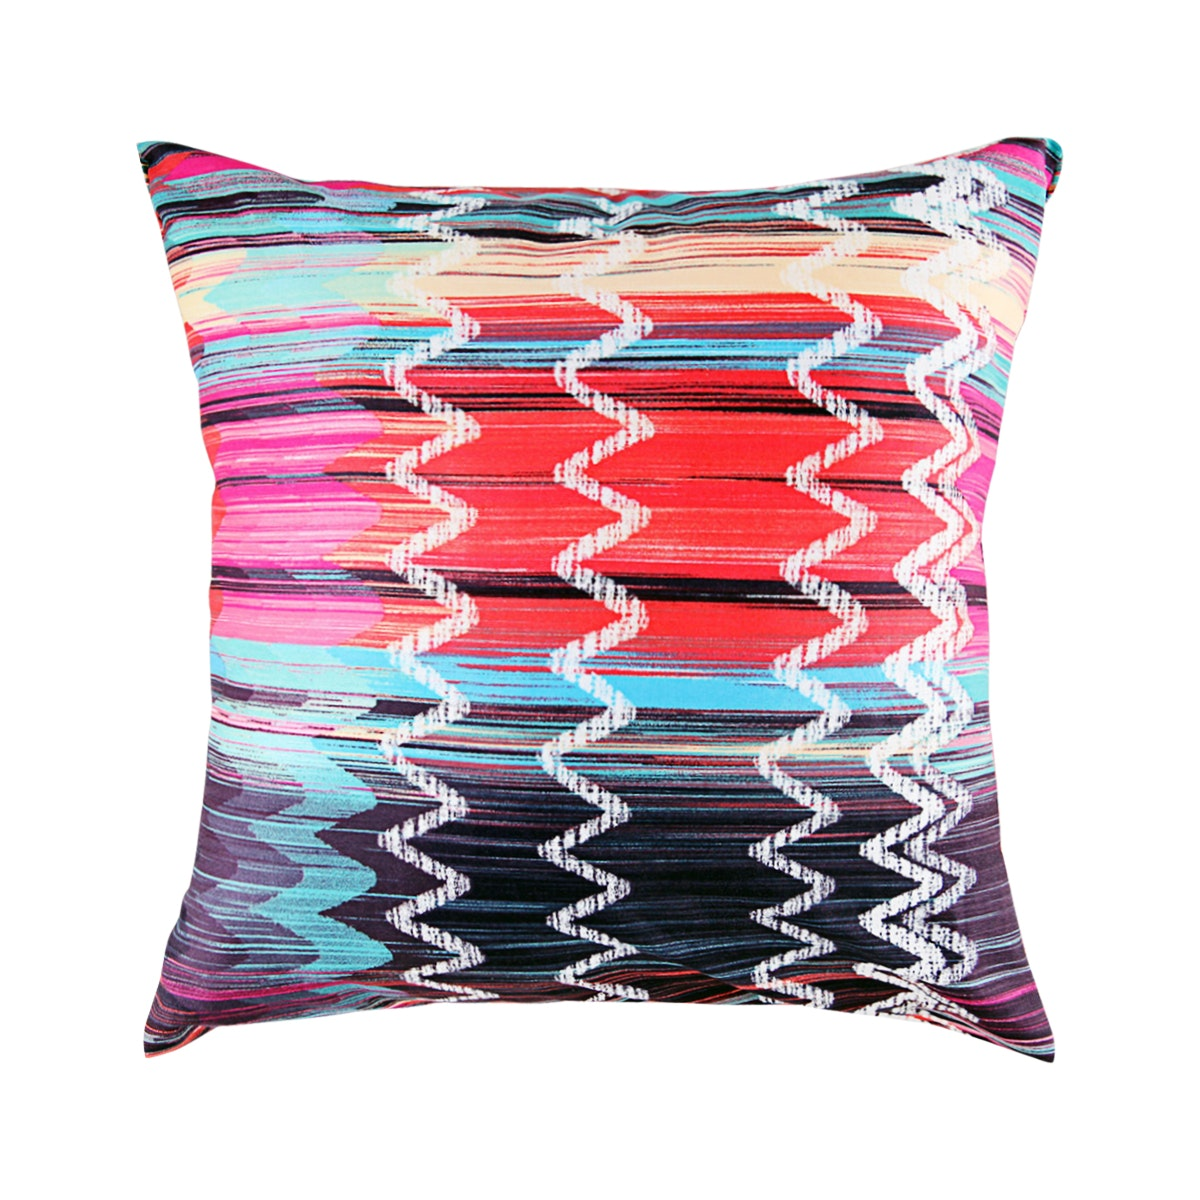 Eolins Cushion Cover Deluxe JSPS5005 50x50cm